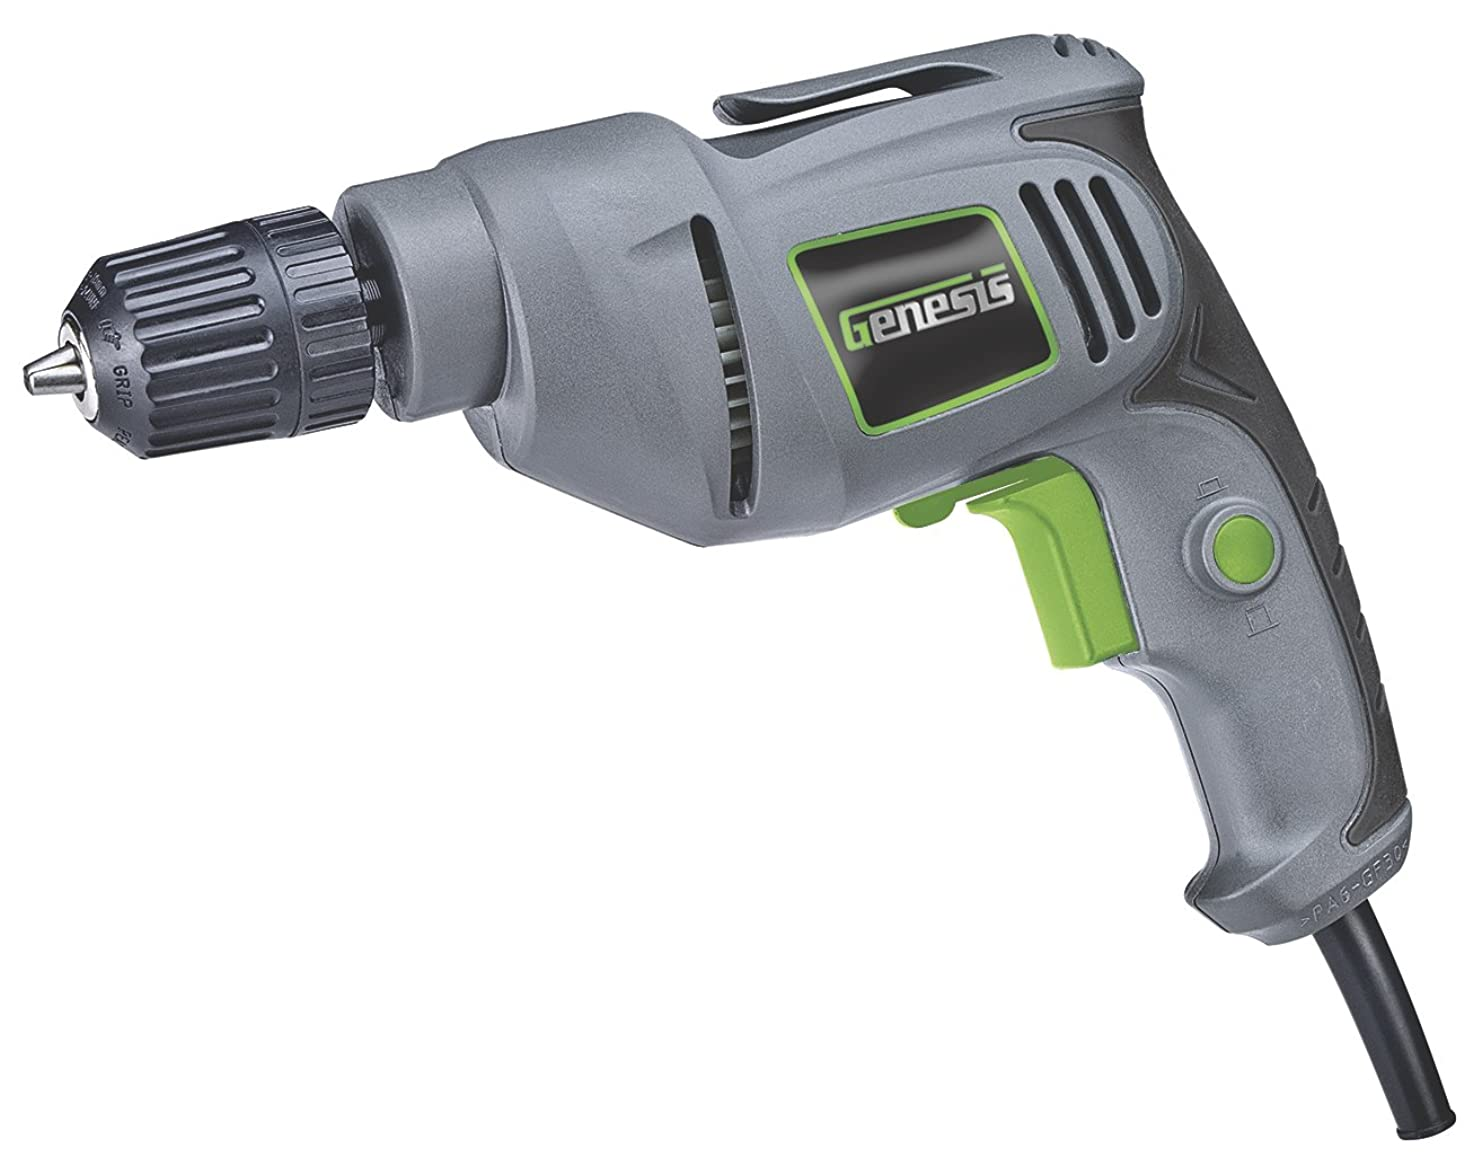 Genesis GD38B VSR Electric Drill, 3/8-Inch, Grey nbvuoufwrpfbo2